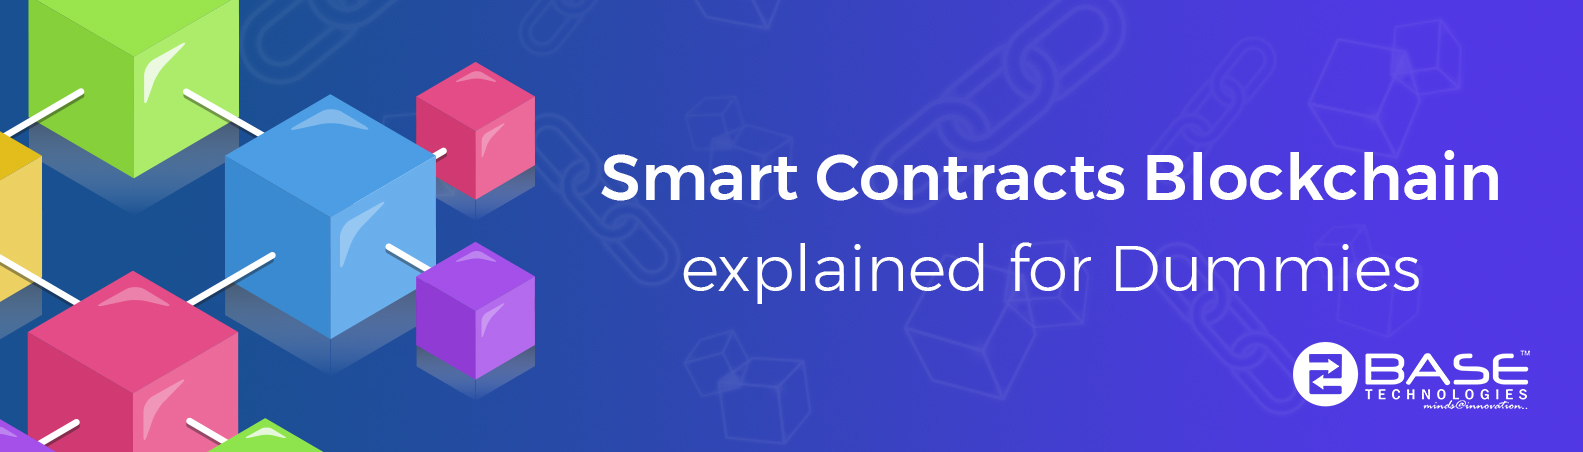 Smart Contracts Blockchain explained for Dummies